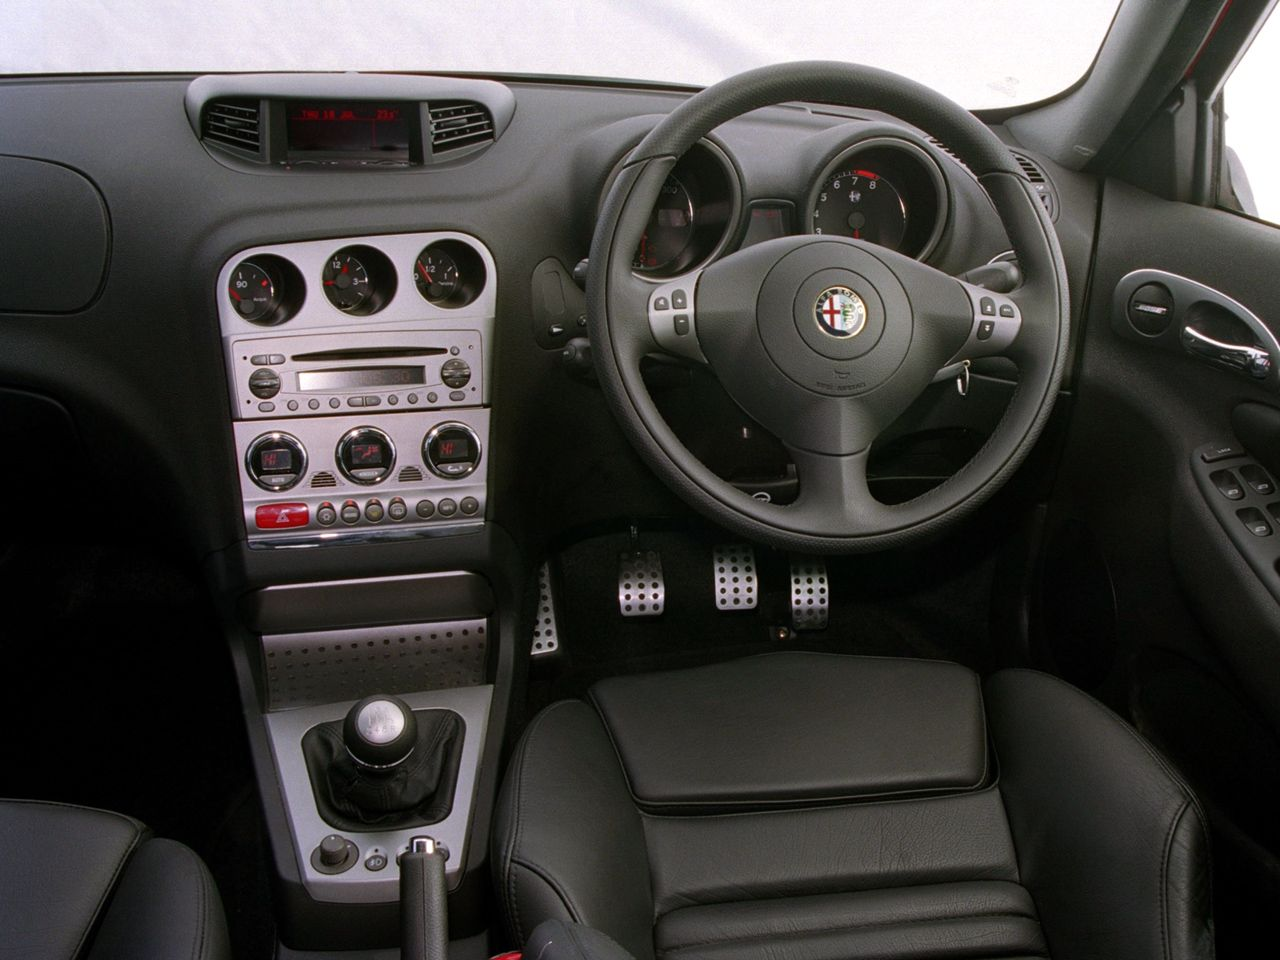 2002 Alfa Romeo 156 GTA | Interior and Dashboard | Pinterest | Alfa ...